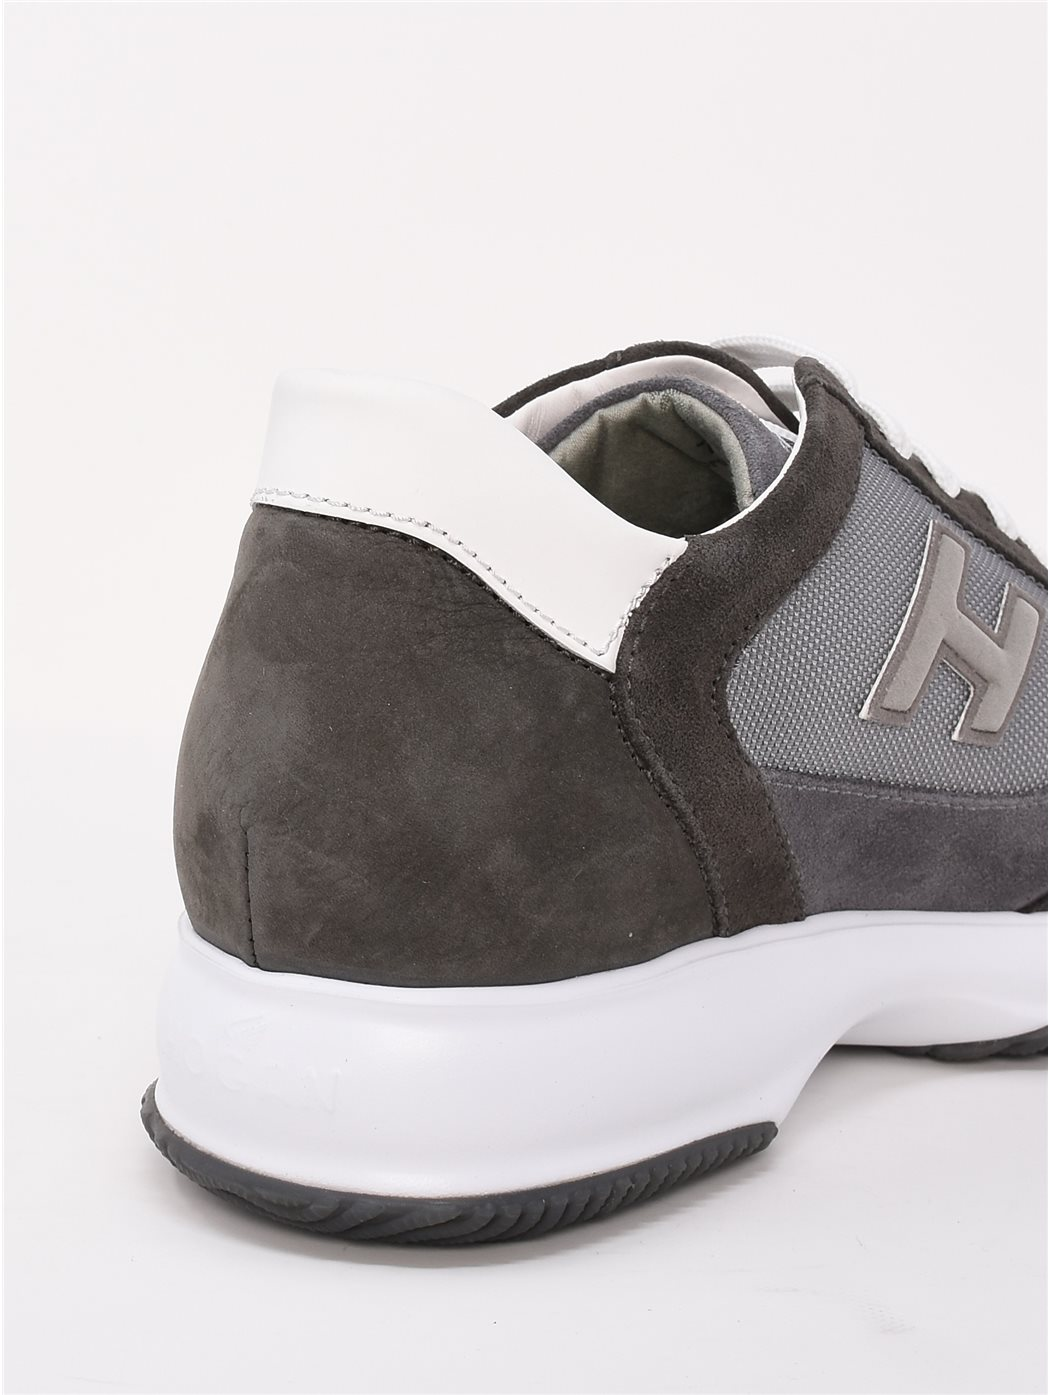 HOGAN HXM00N0 50C1 SNEAKERS